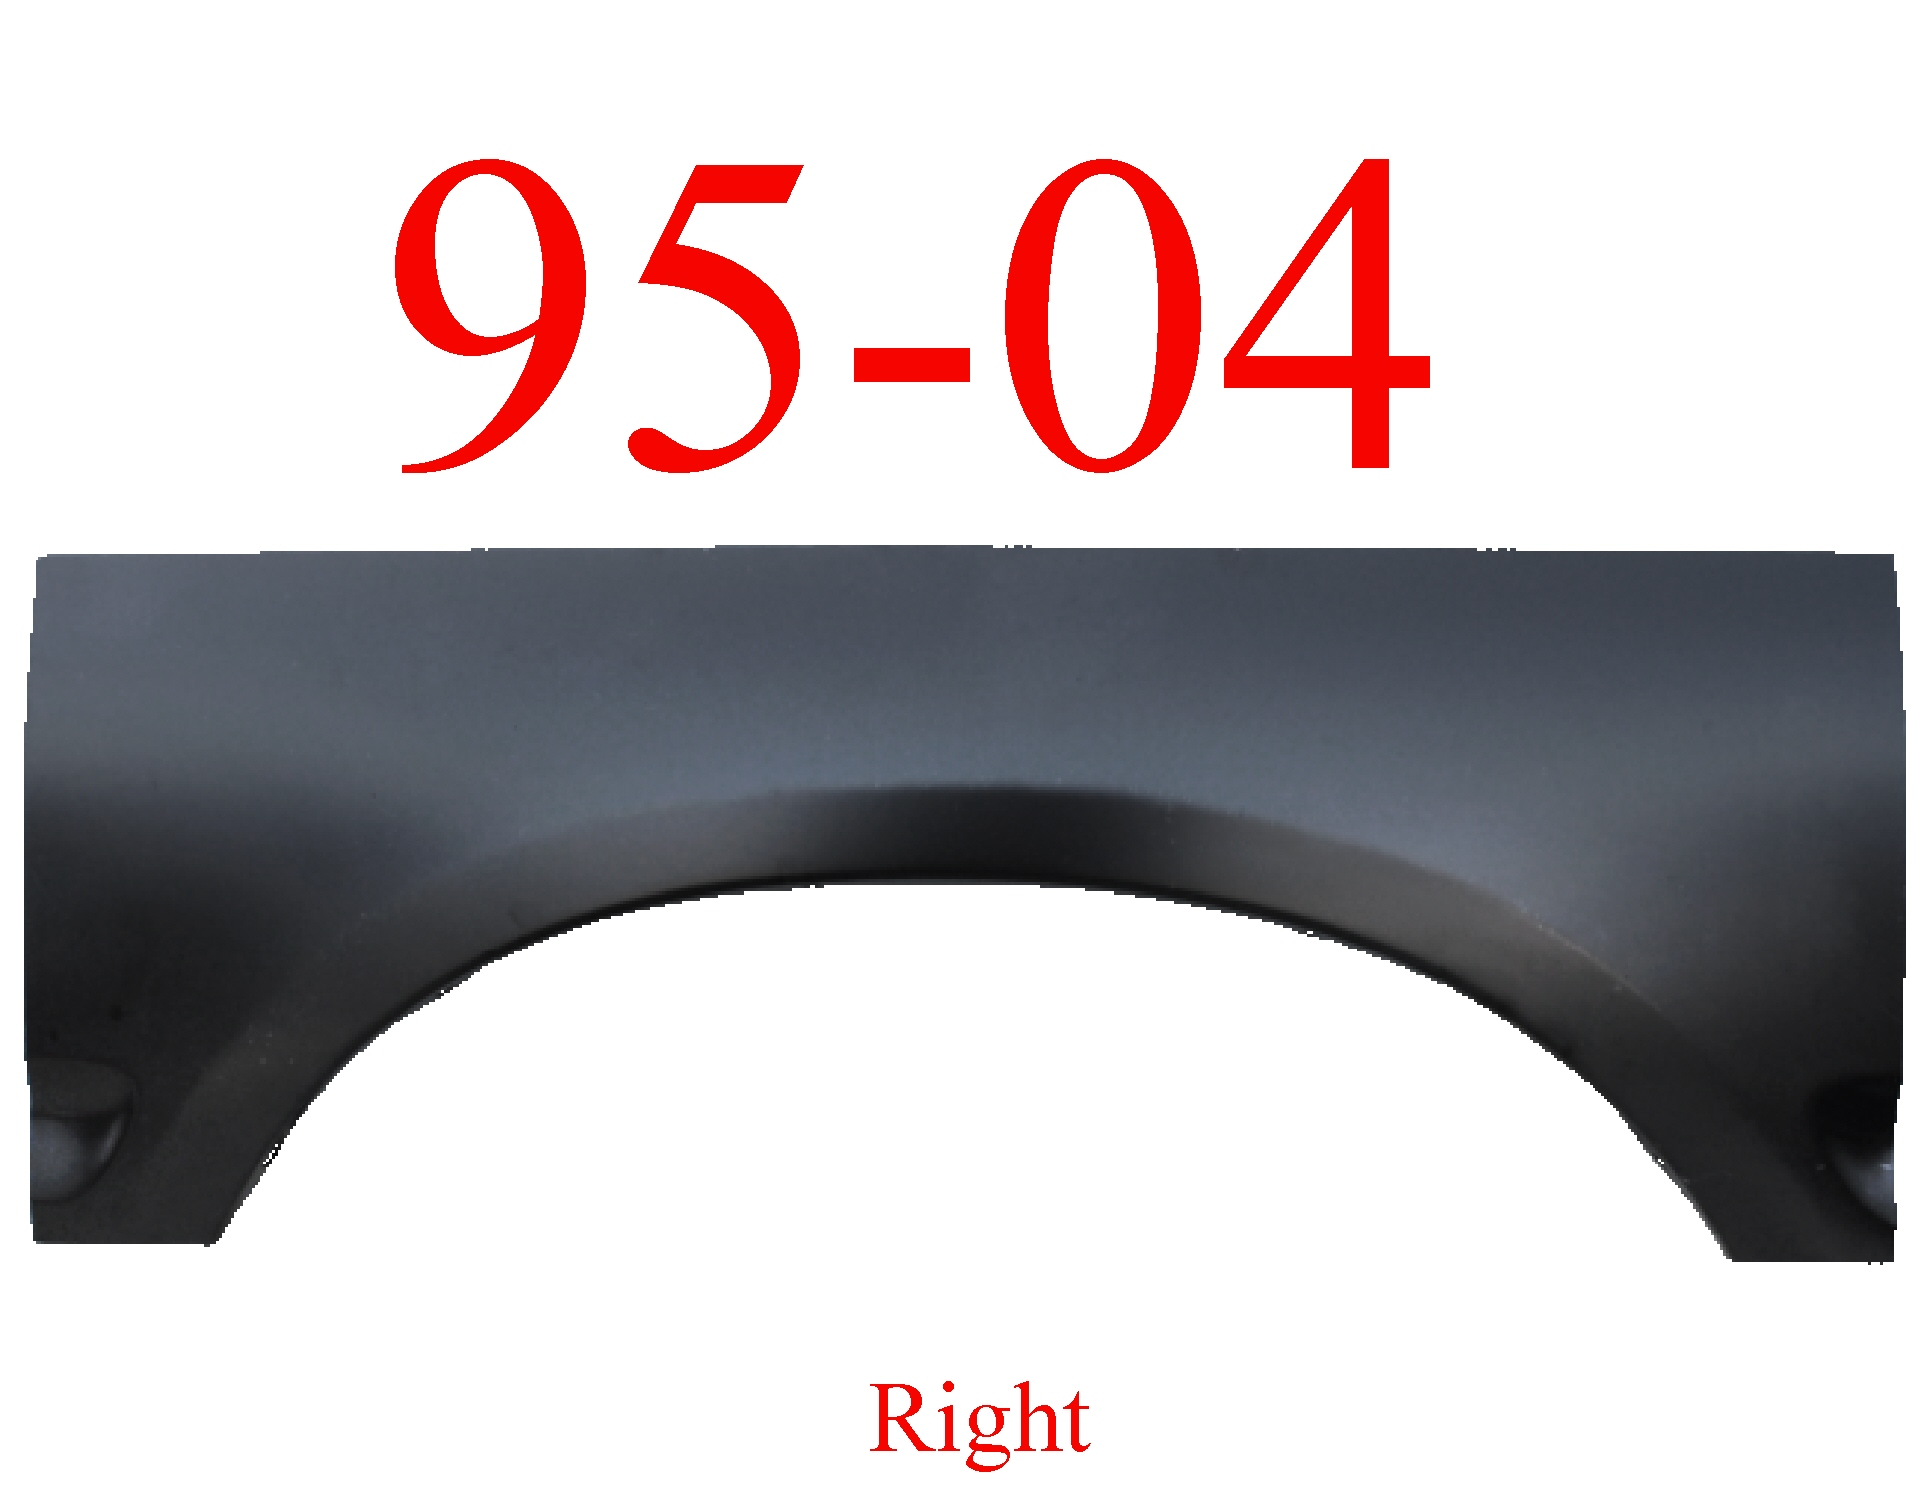 95-04 Toyota Tacoma Right Upper Arch Panel